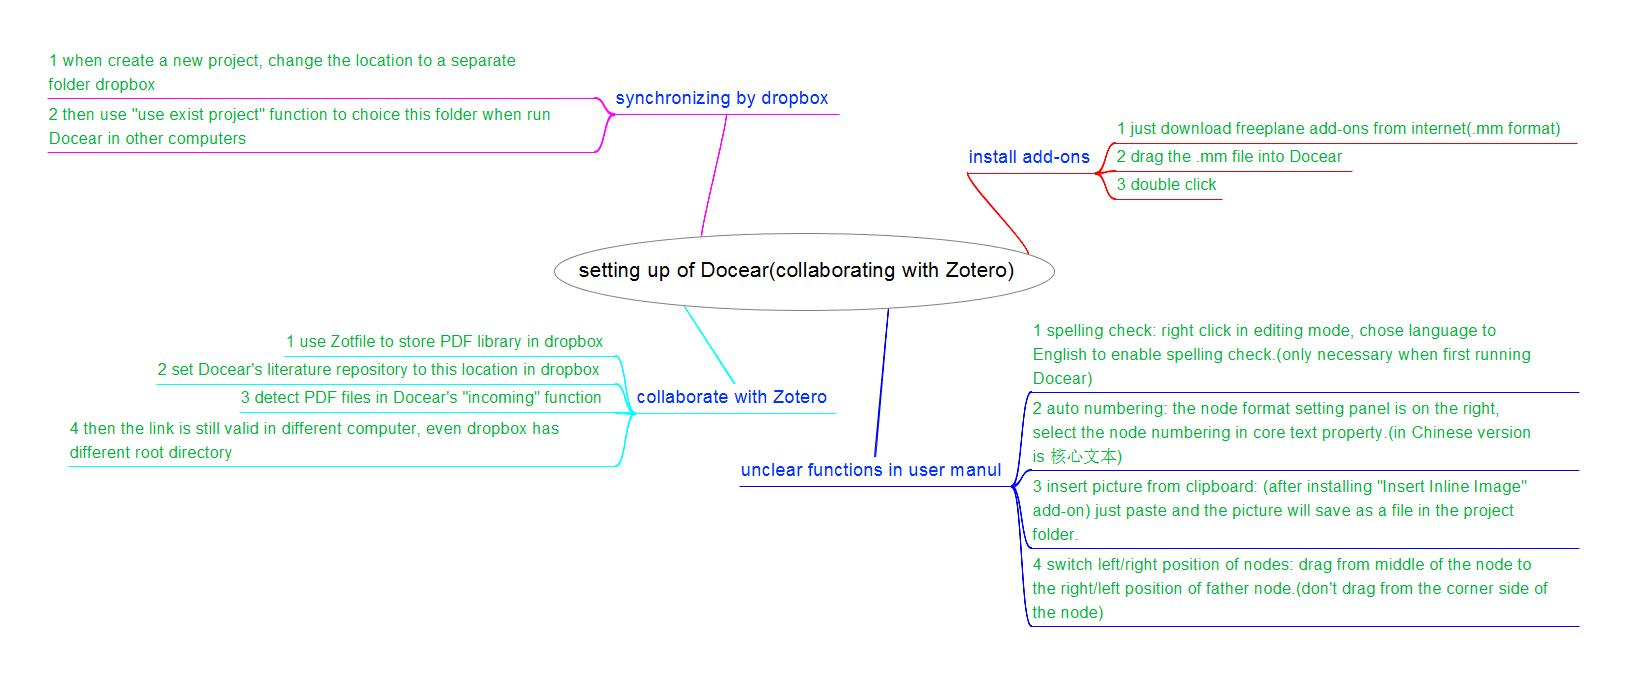 setting up of Docear(collaborating with Zotero)